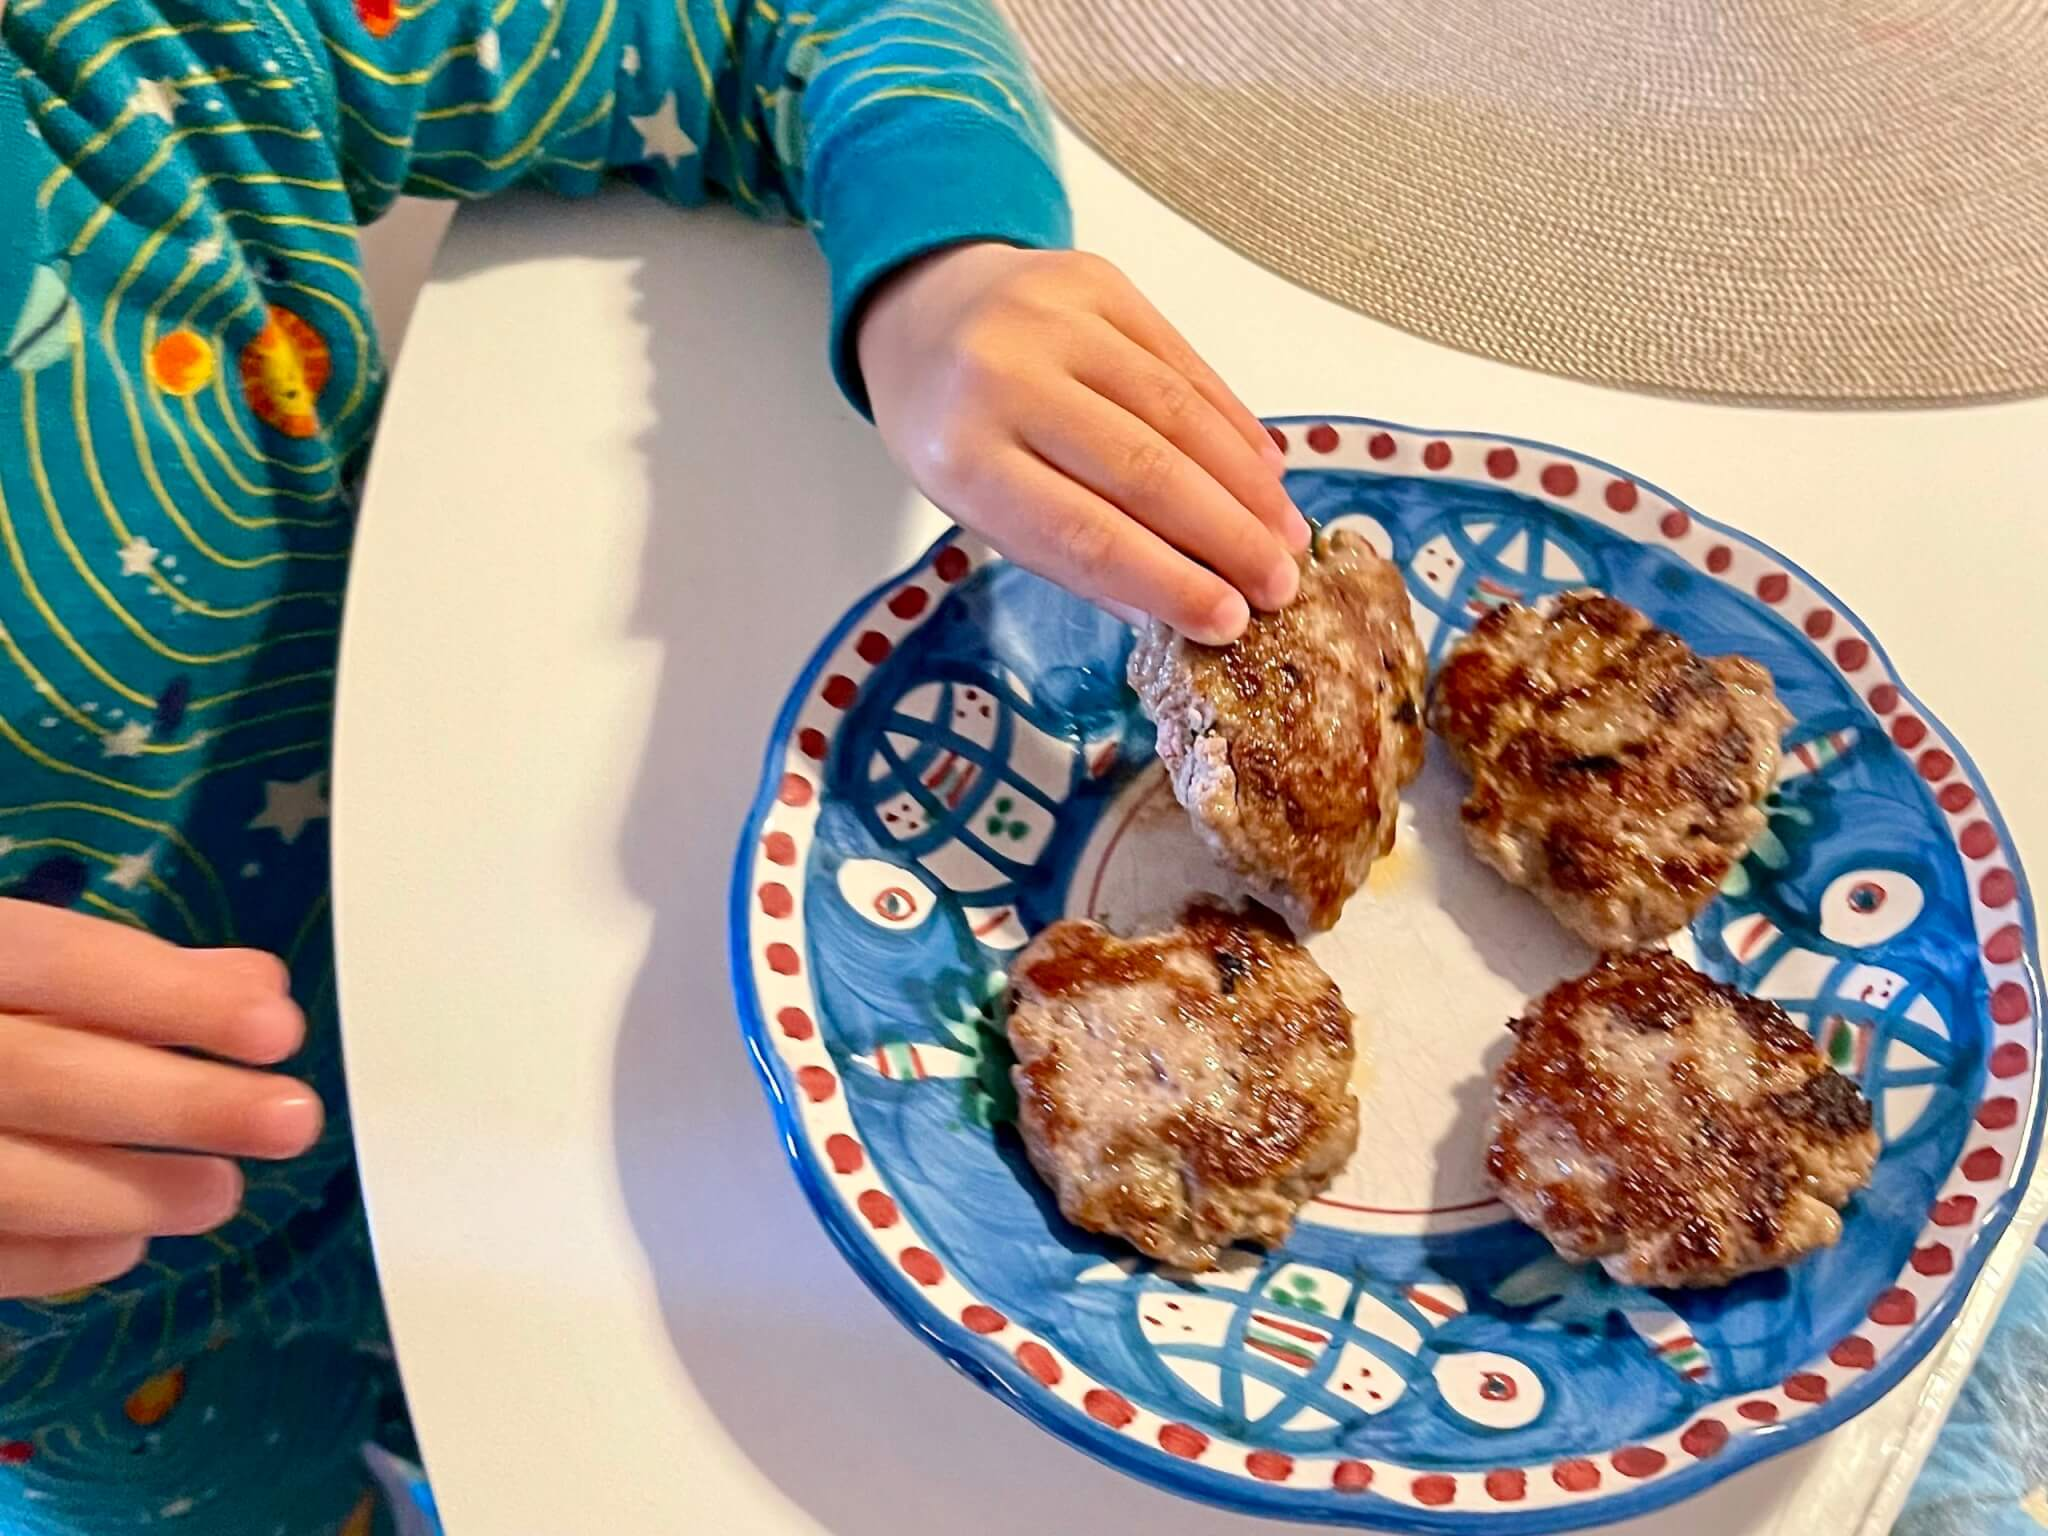 Love sausage but trying to eat healthier? Ground pork and a short list of spices create a healthy alternative that tastes just like sausage and can be used in so many ways.